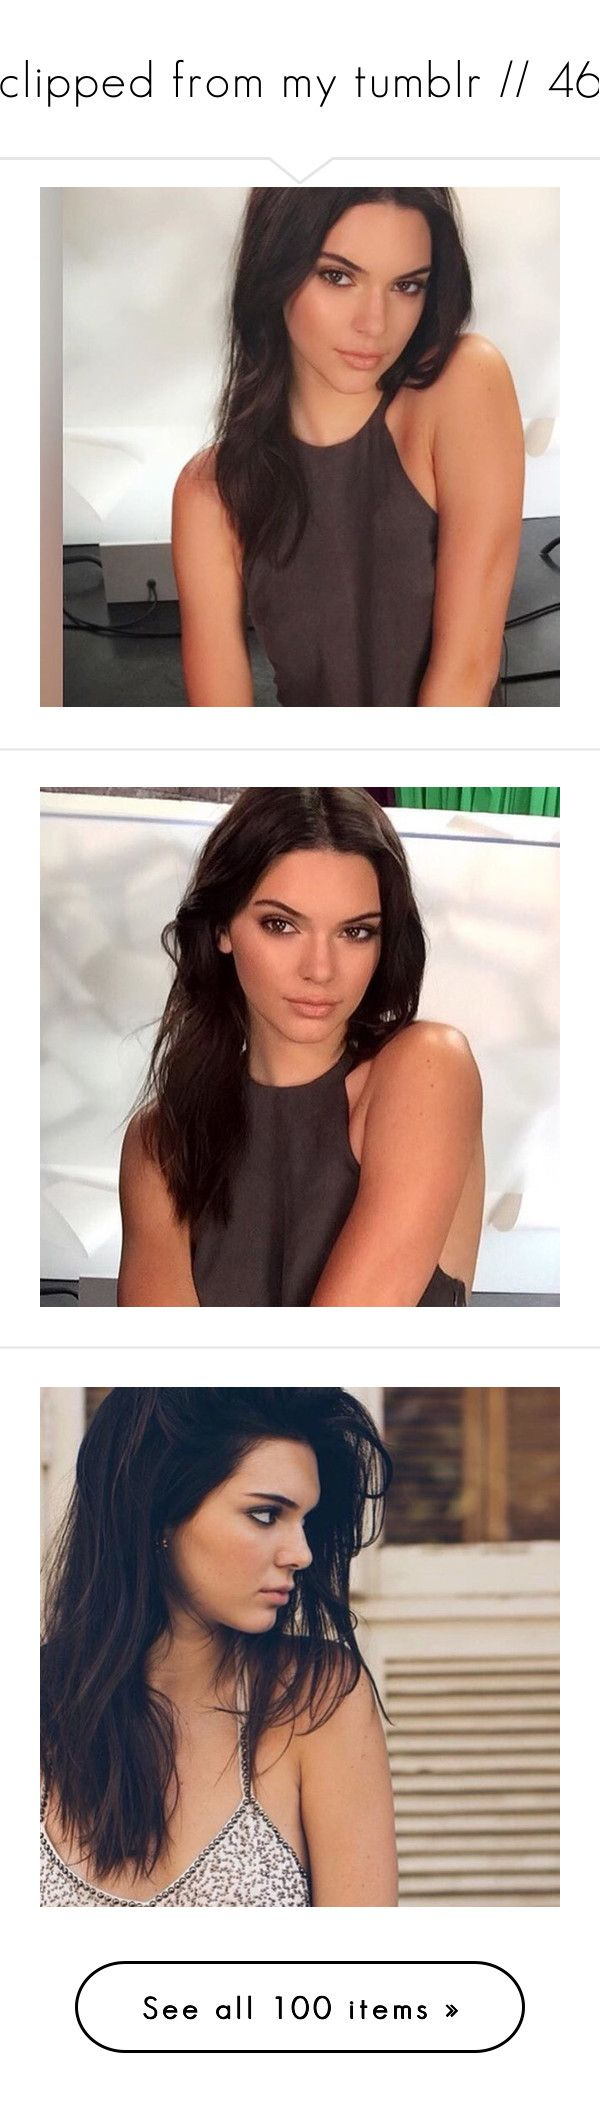 """clipped from my tumblr // 46"" by cupcakes-are-cool ❤ liked on Polyvore featuring kendall jenner, girls, kendall, harry styles, couples, backgrounds, people, them, pictures and black and white"